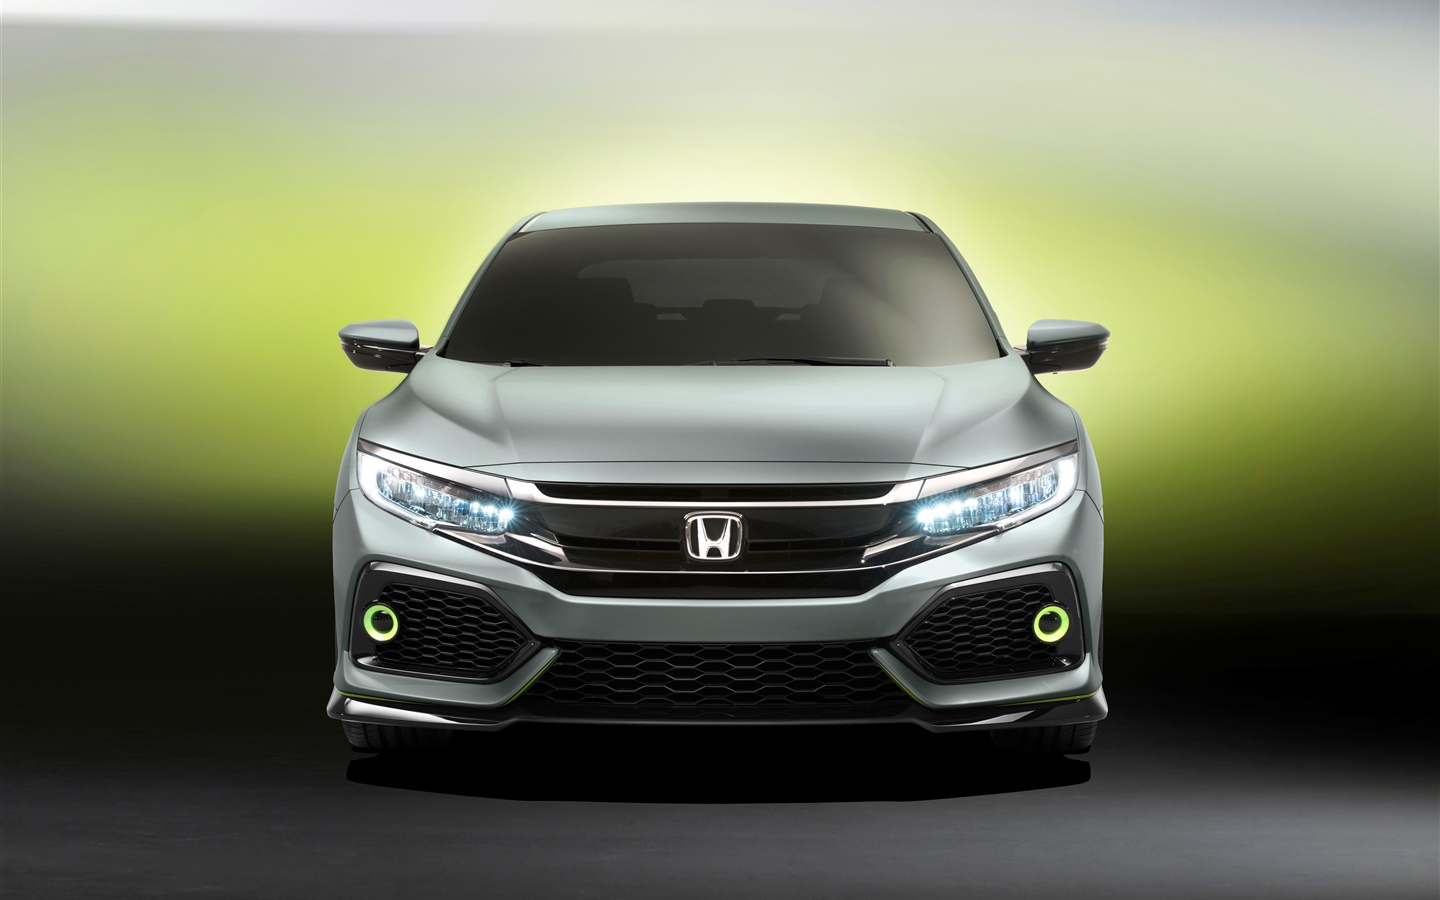 Honda Civic Hatchback car front view 1440x900 wallpaper